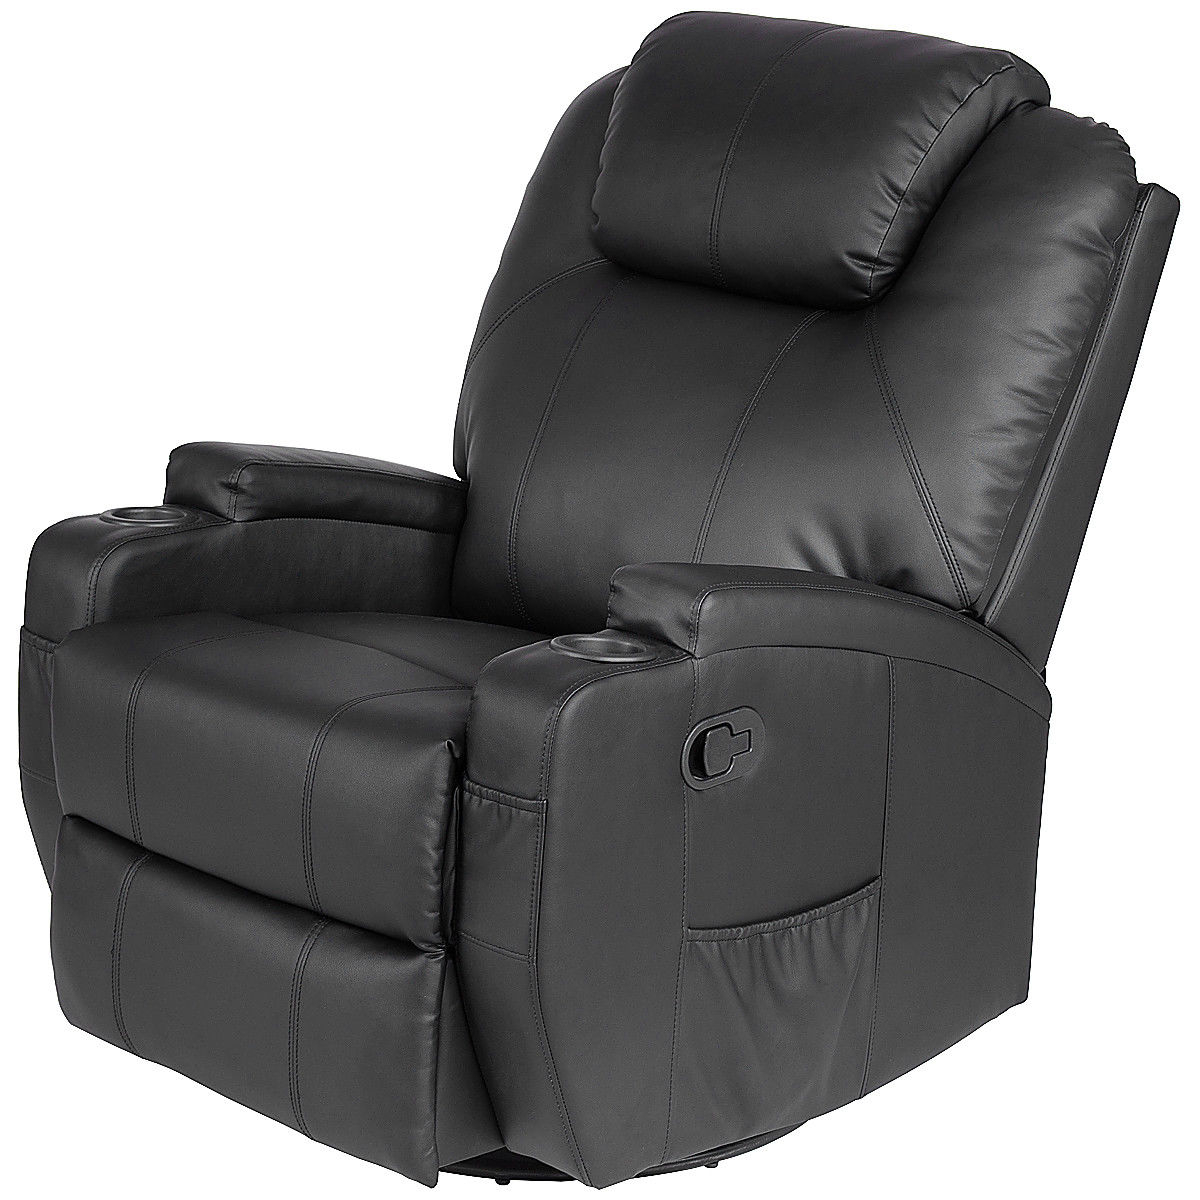 Sofa Chair Recliner Intended For Most Popular Costway: Costway Electric Massage Recliner Sofa Chair Heated 360 (Gallery 20 of 20)